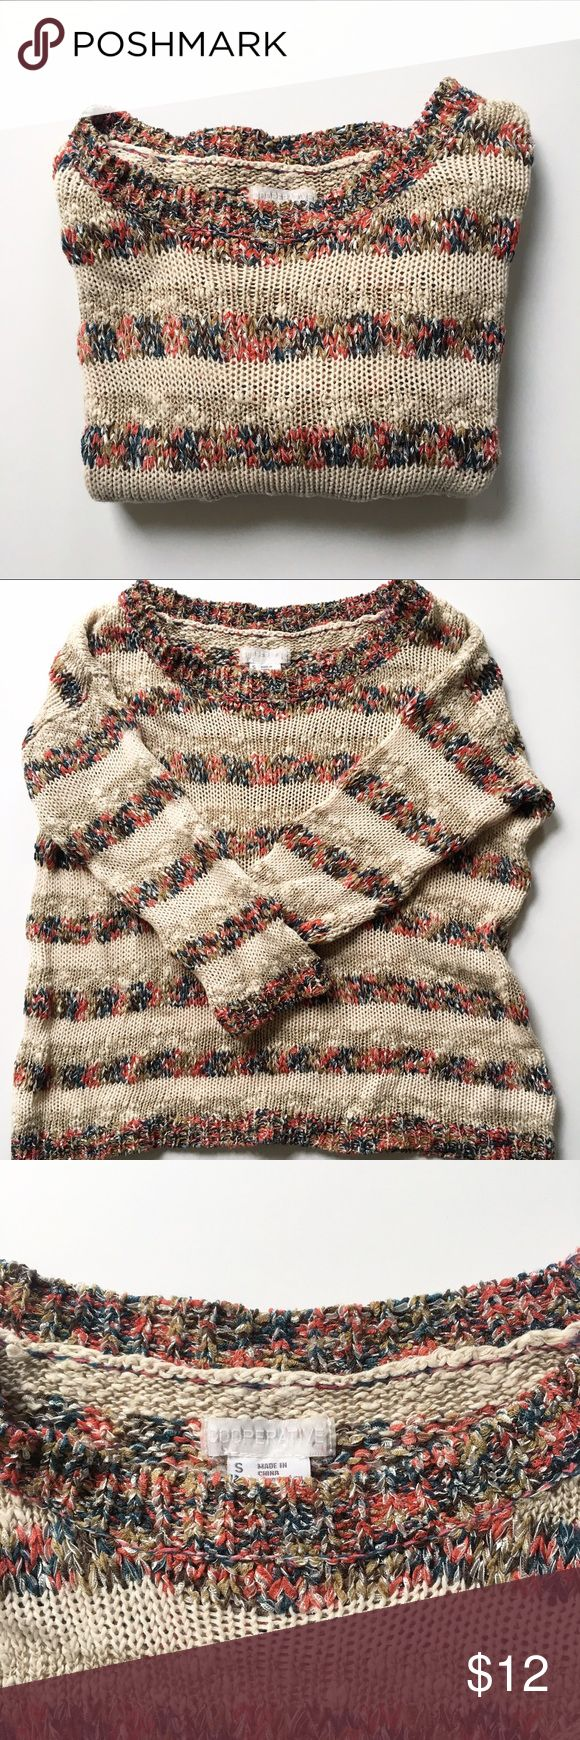 Urban Outfitters Multi Colored Loose Knit Sweater Cute pullover sweater by Cooperative from Urban Outfitters. Loose knit and perfect for spring/chilly summer nights! Cream with multi colored yarn stripes. Urban Outfitters Sweaters Crew & Scoop Necks